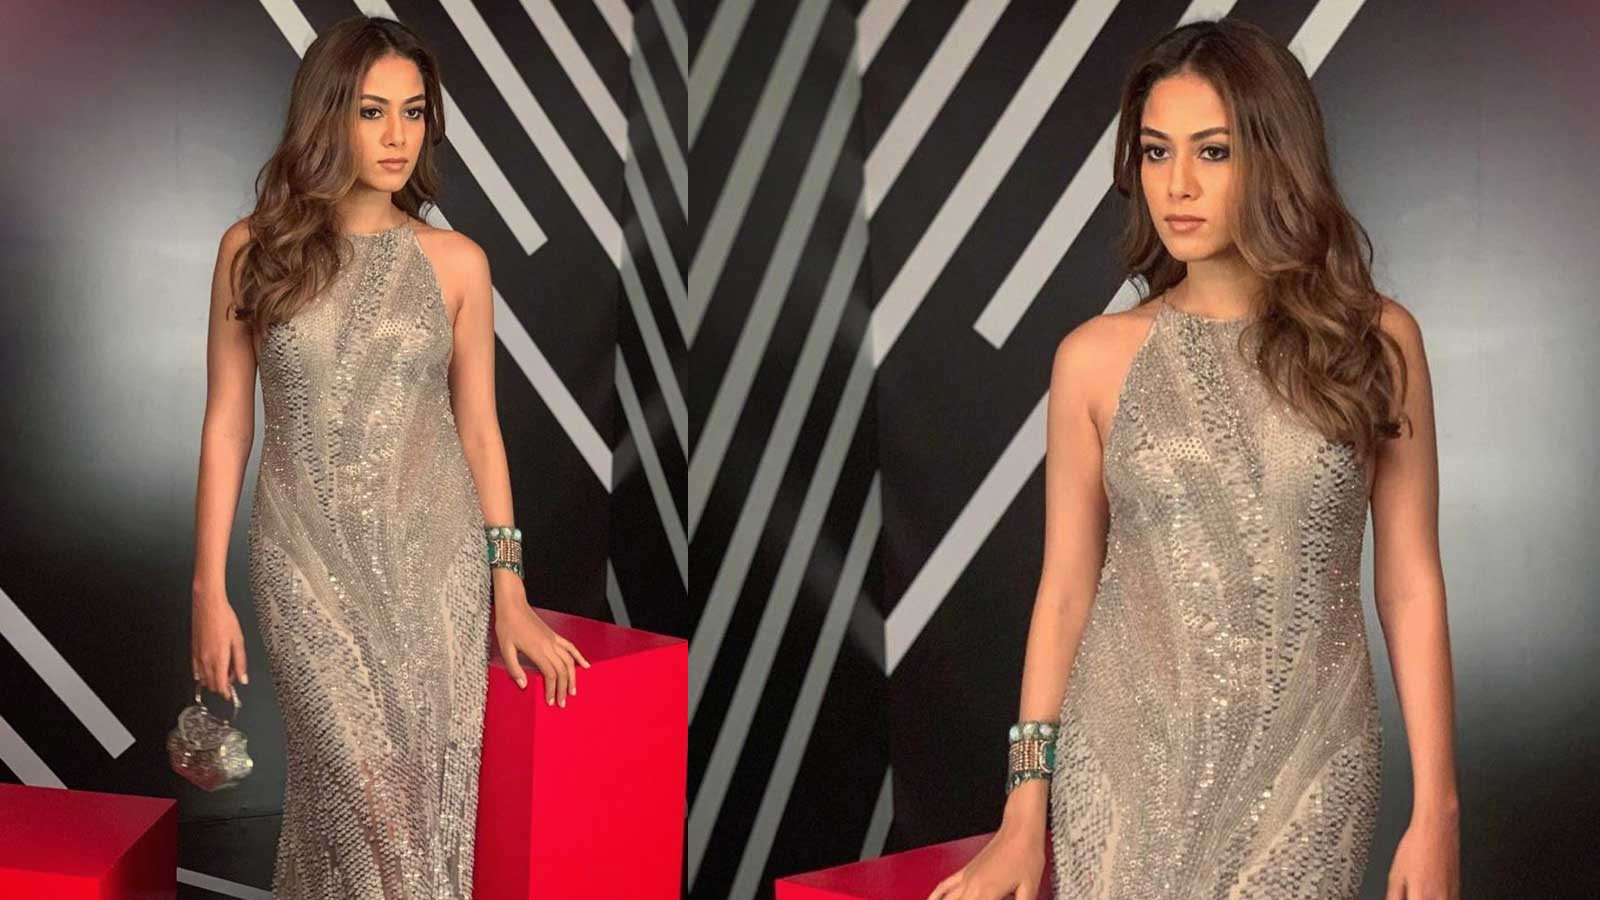 mira-rajput-looks-like-a-true-diva-in-this-glitzy-glam-outfit